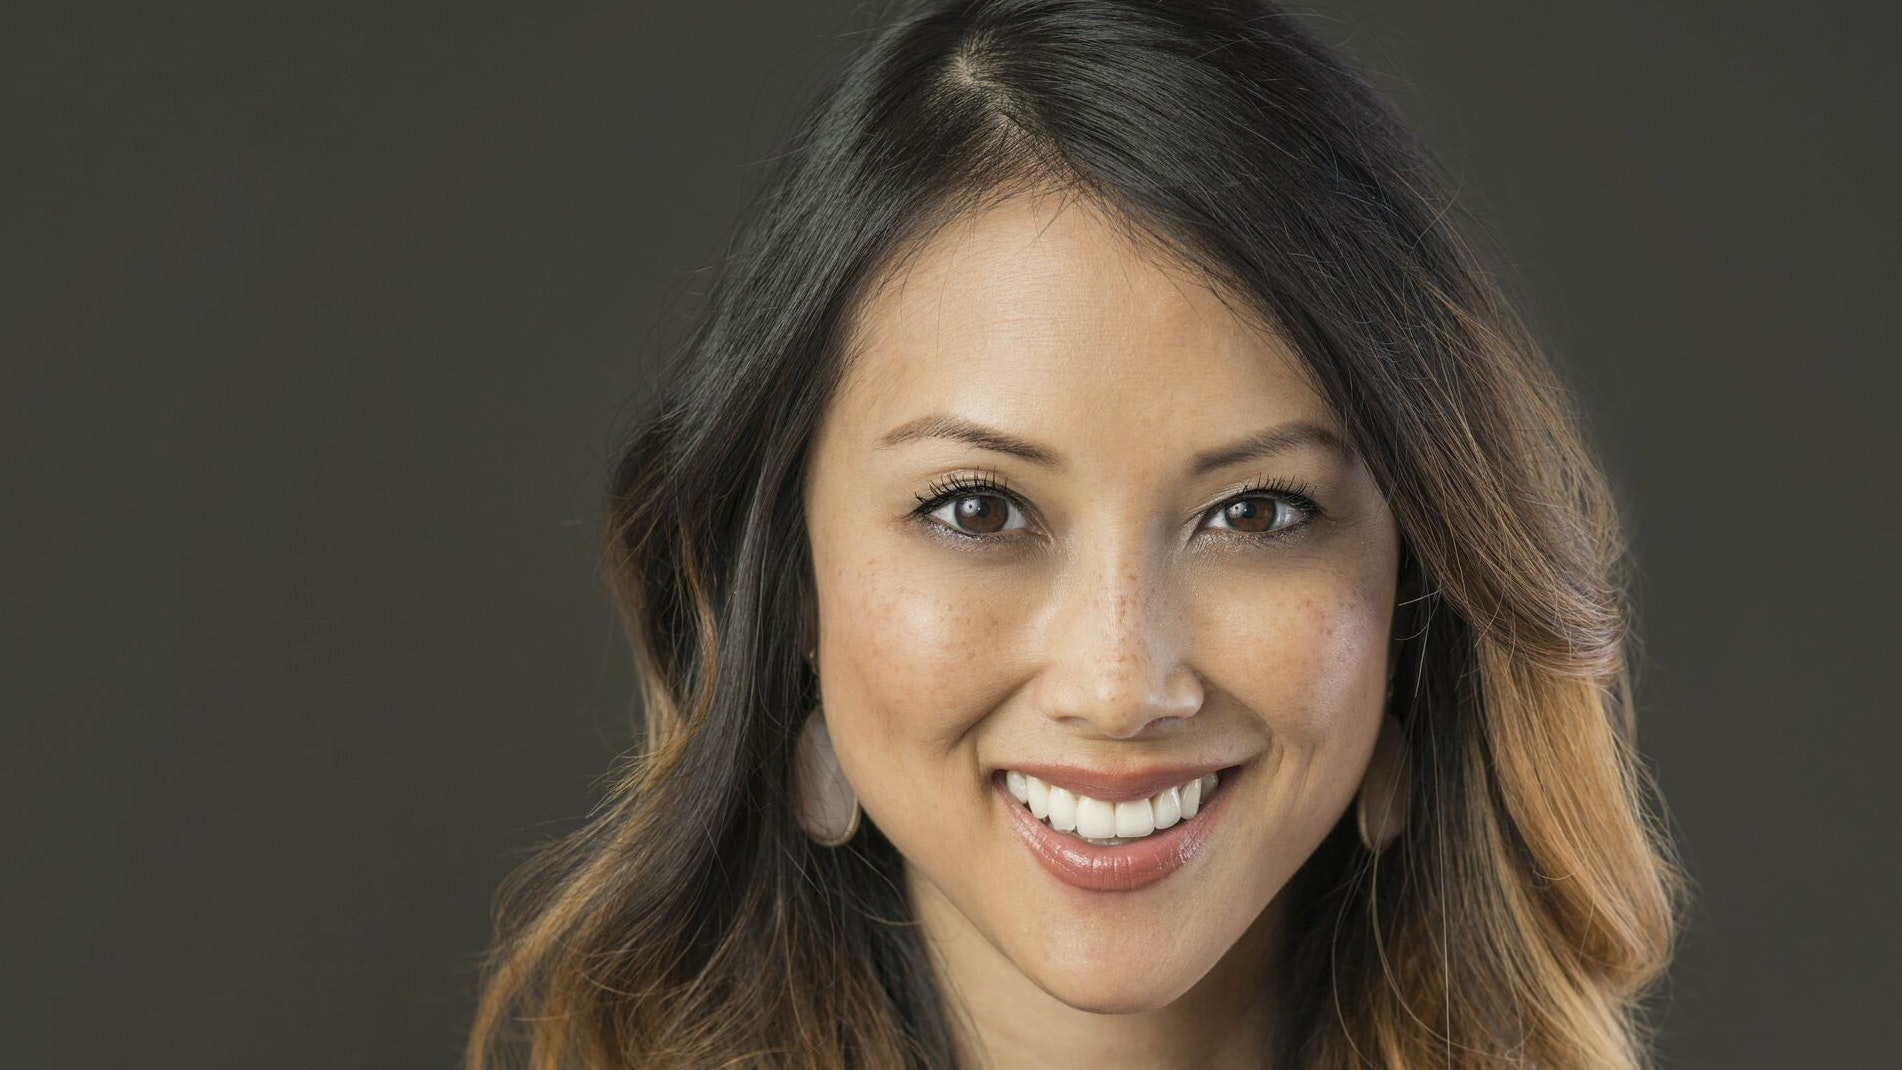 Nashville Dermatologist Dr. Jennifer Lee on the Beauty Trick She Snagged From Tyra Banks